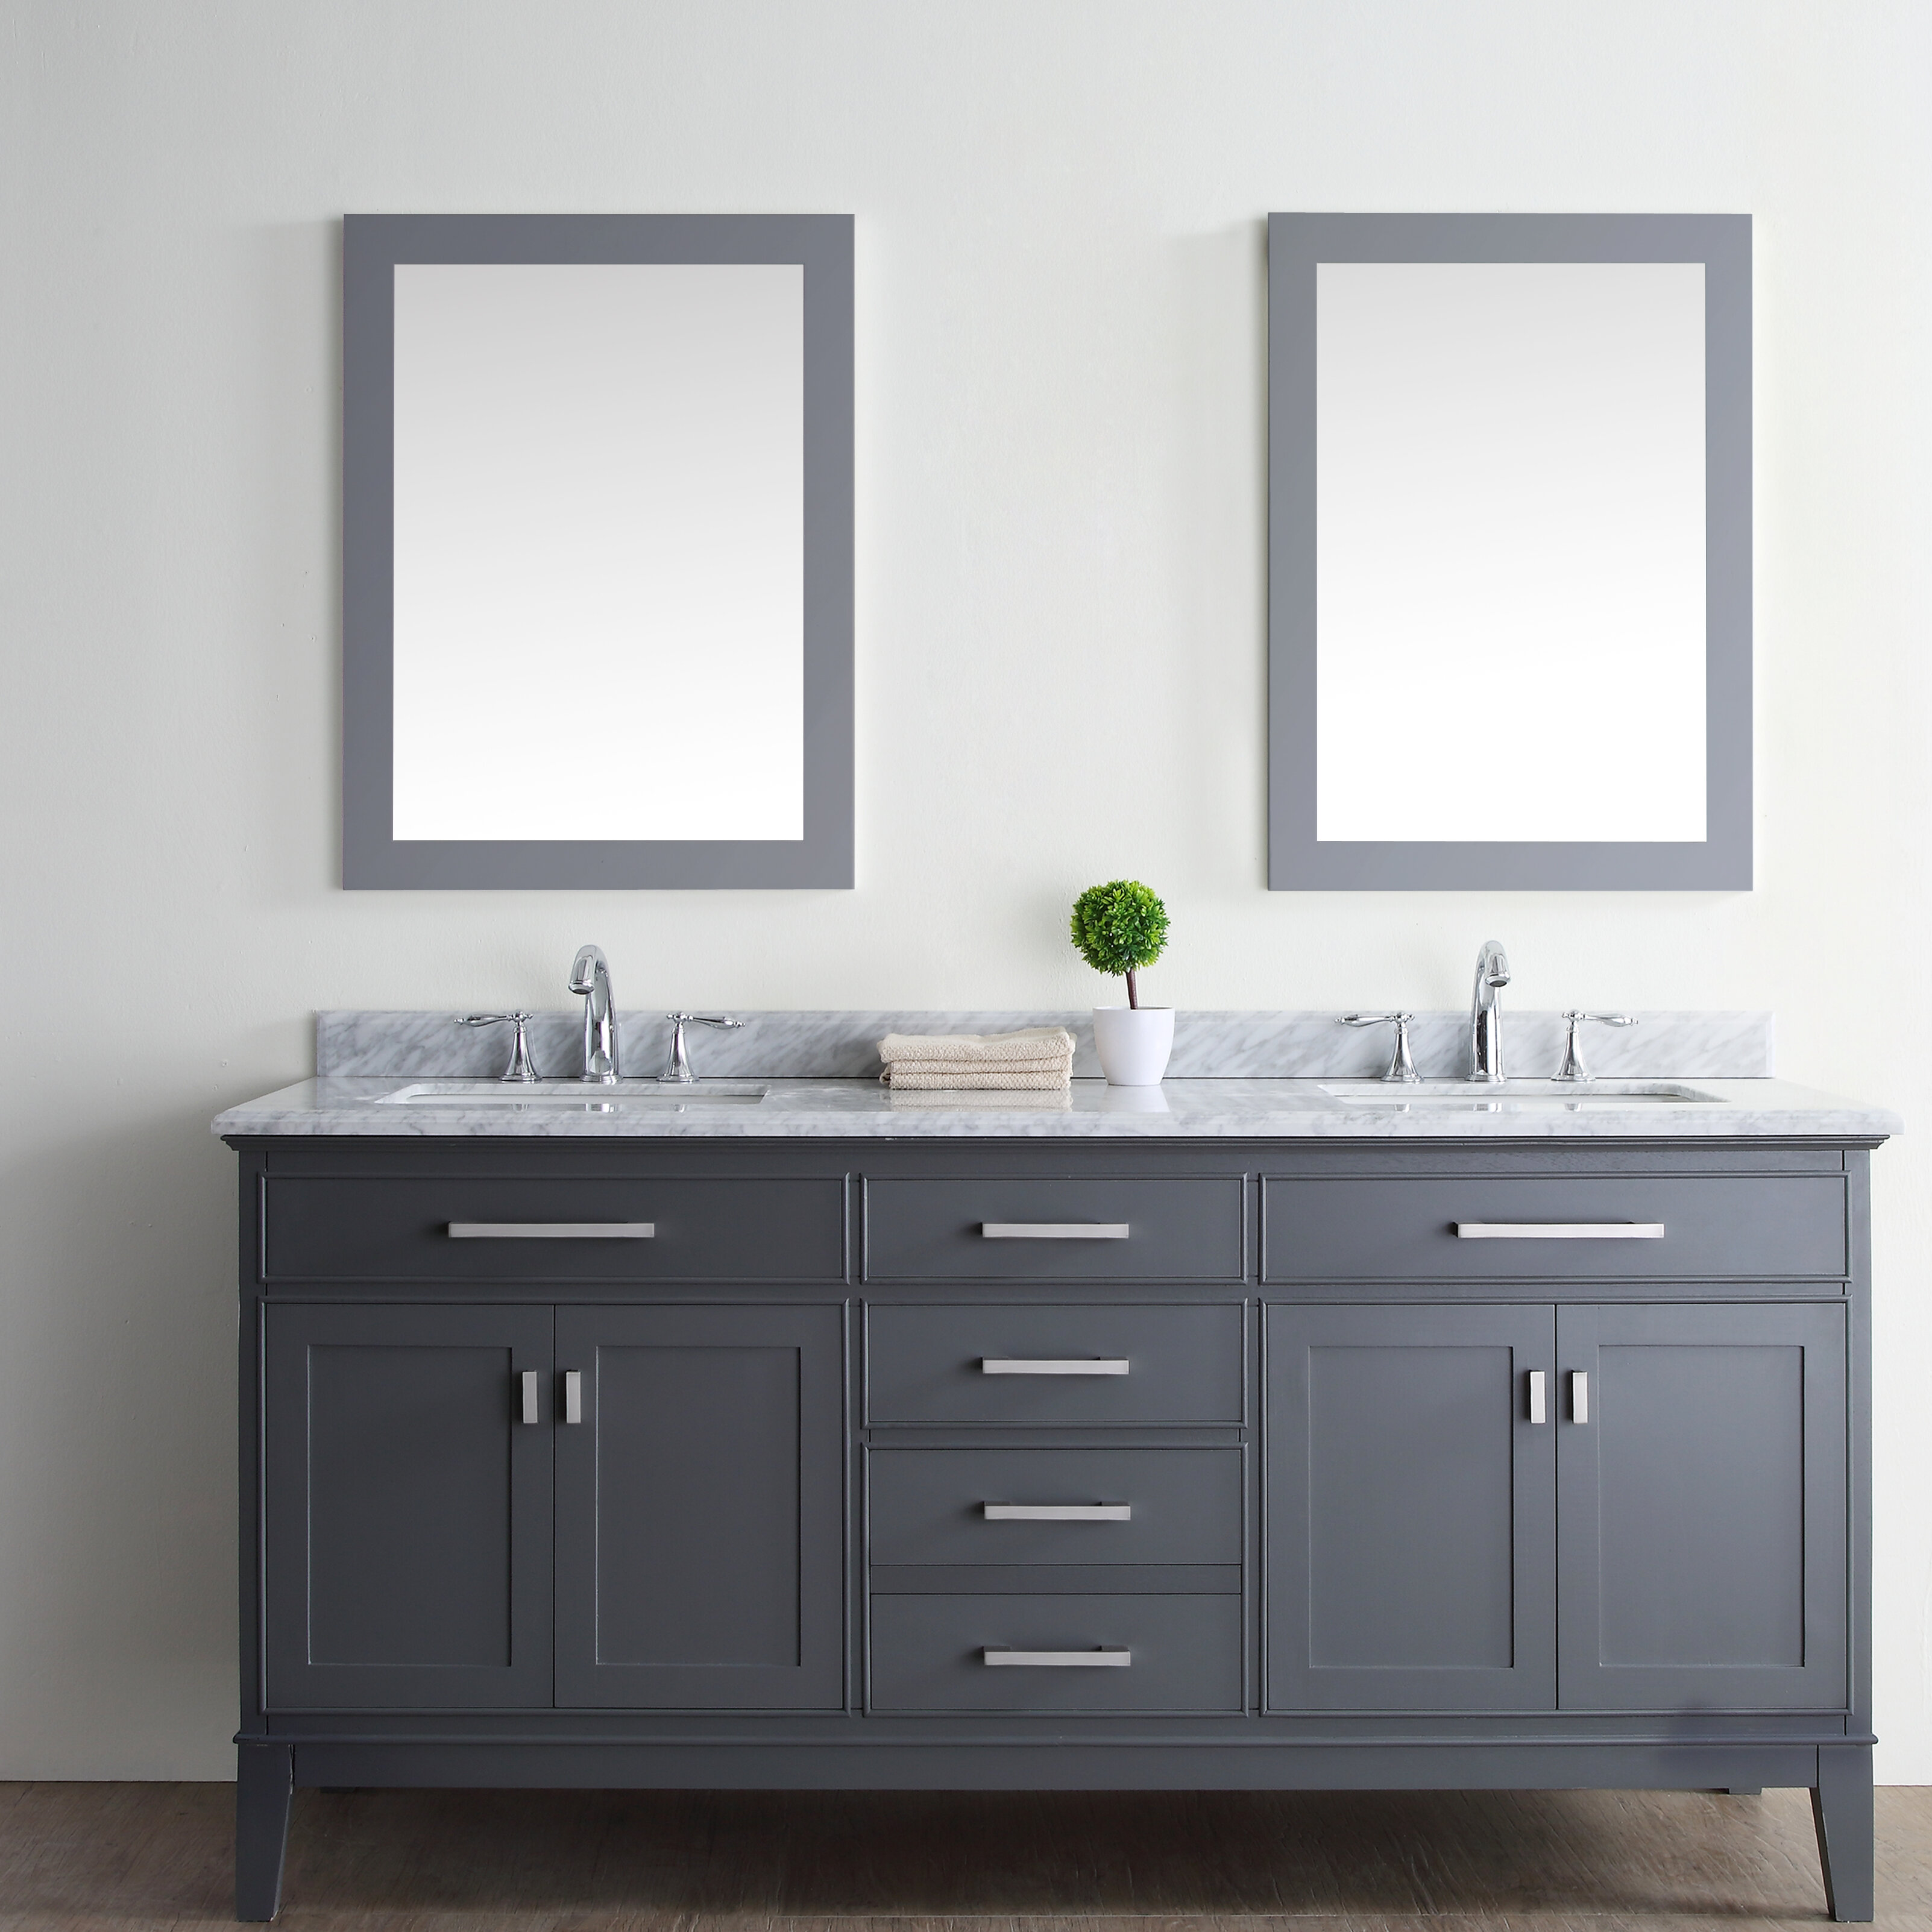 vanities astonishing edge sink some size unit glossy carving of countertops full furniture best two door painting white brass handle faucet cabinet plus style ideas bathroom also black flanked granite knob with as double using mirror a under steps top vanity and well ogee drawers corner